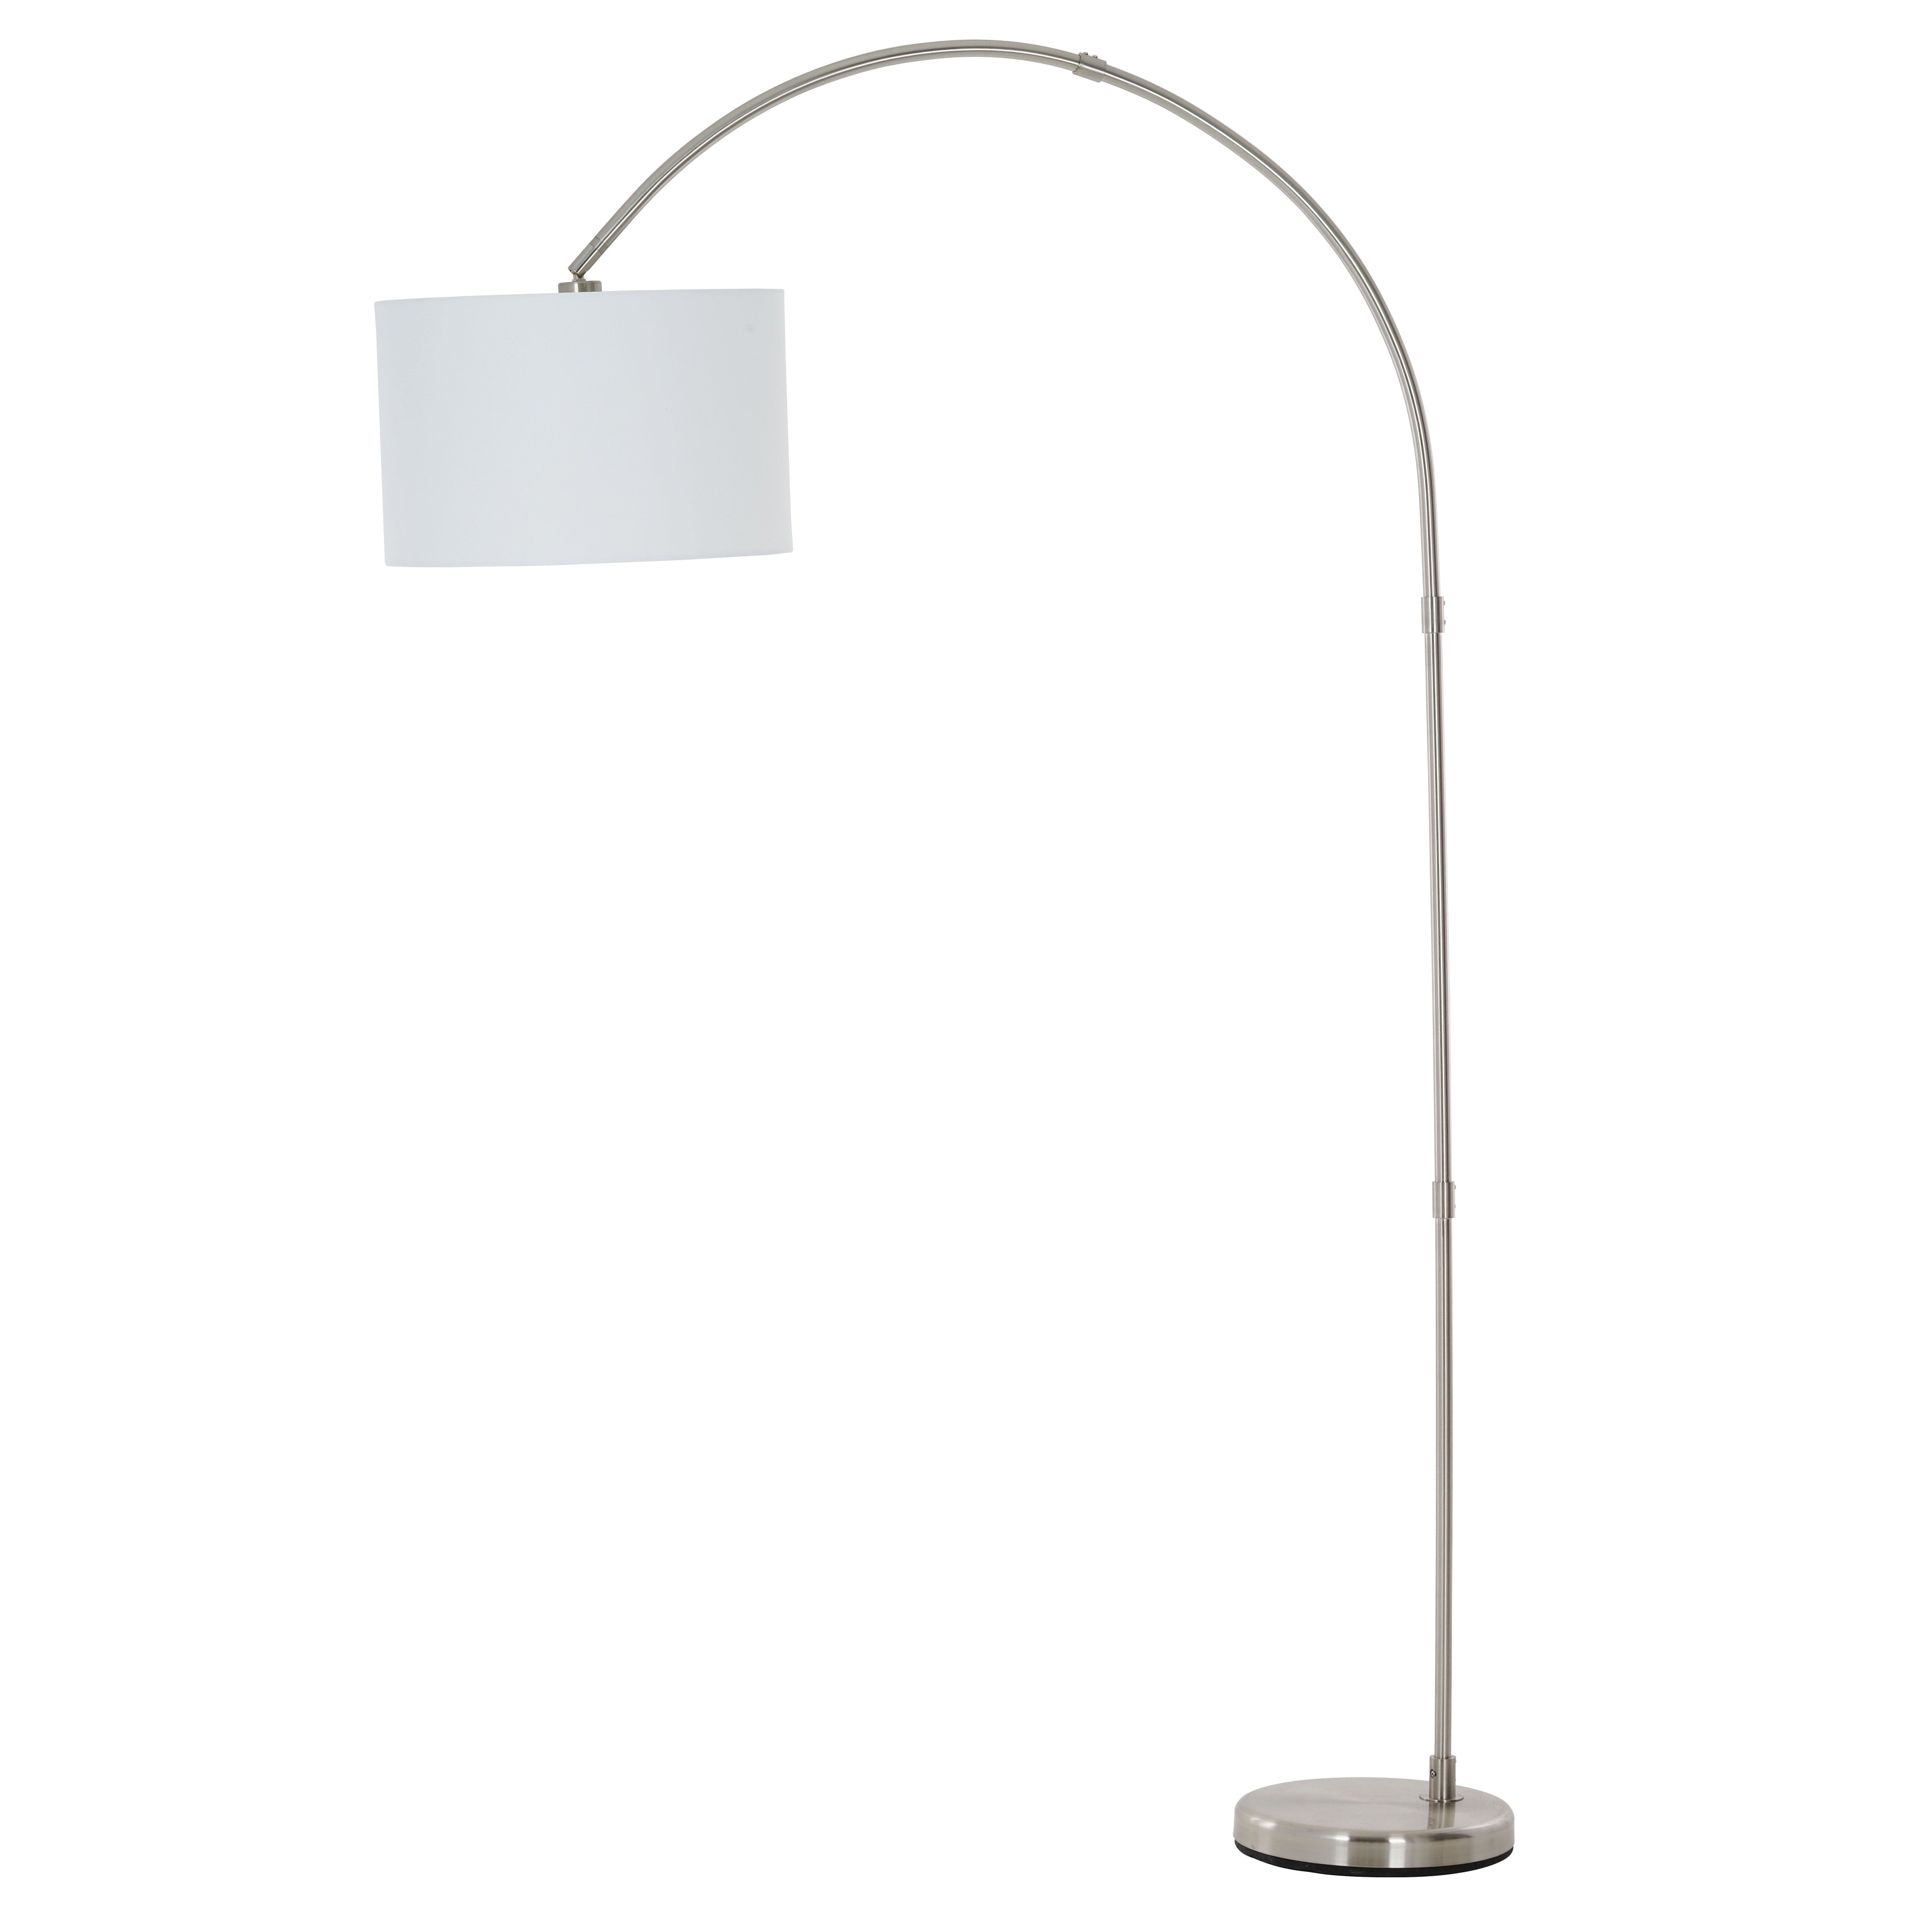 Catalina Lighting Susan Arc Floor Lamp With Shade   Free Shipping Today    Overstock.com   25767904